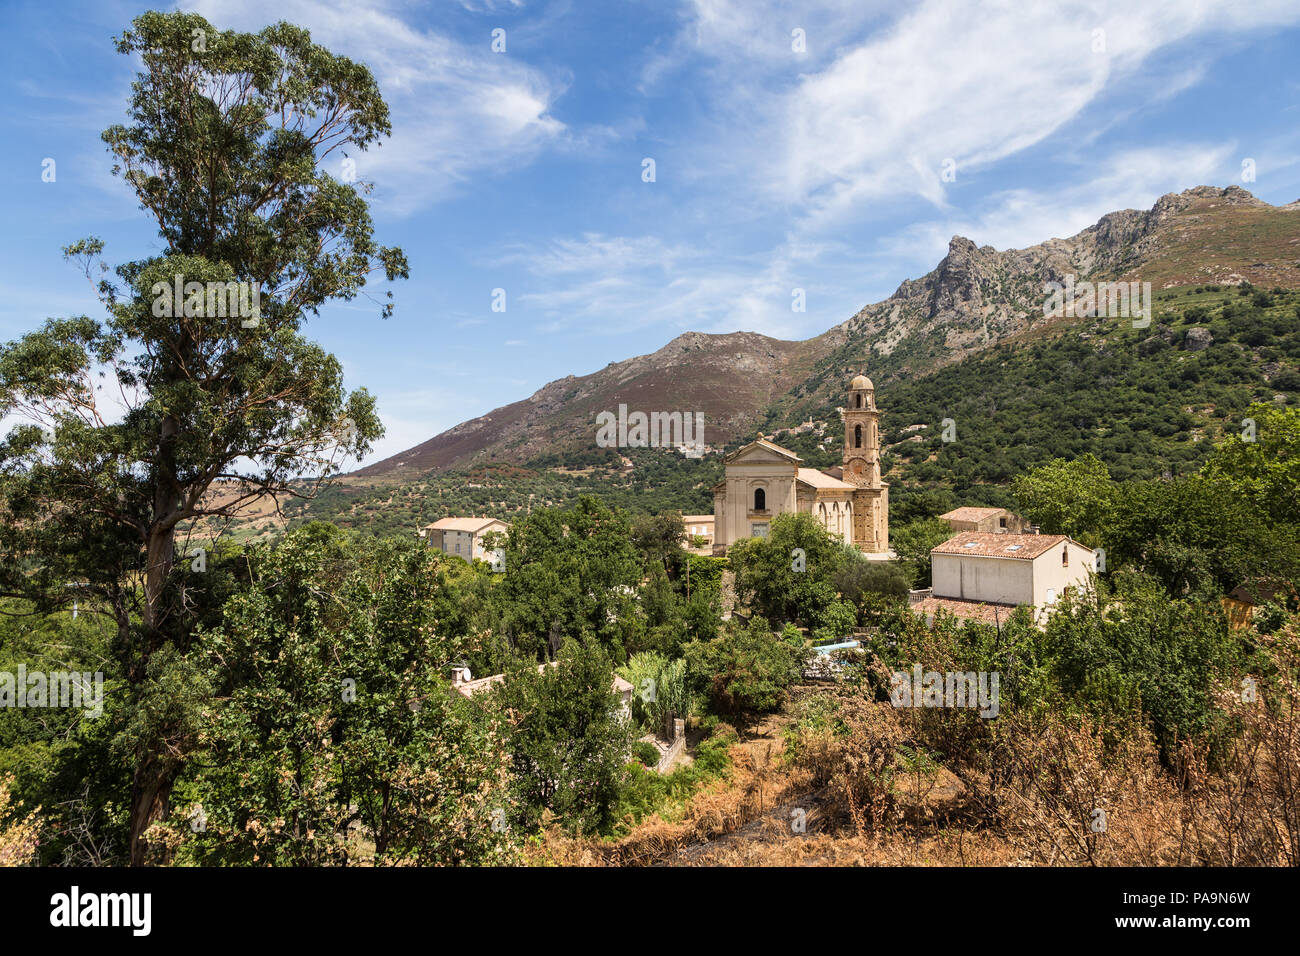 An ancient traditional village in the mountains of Corsica in France - Stock Image